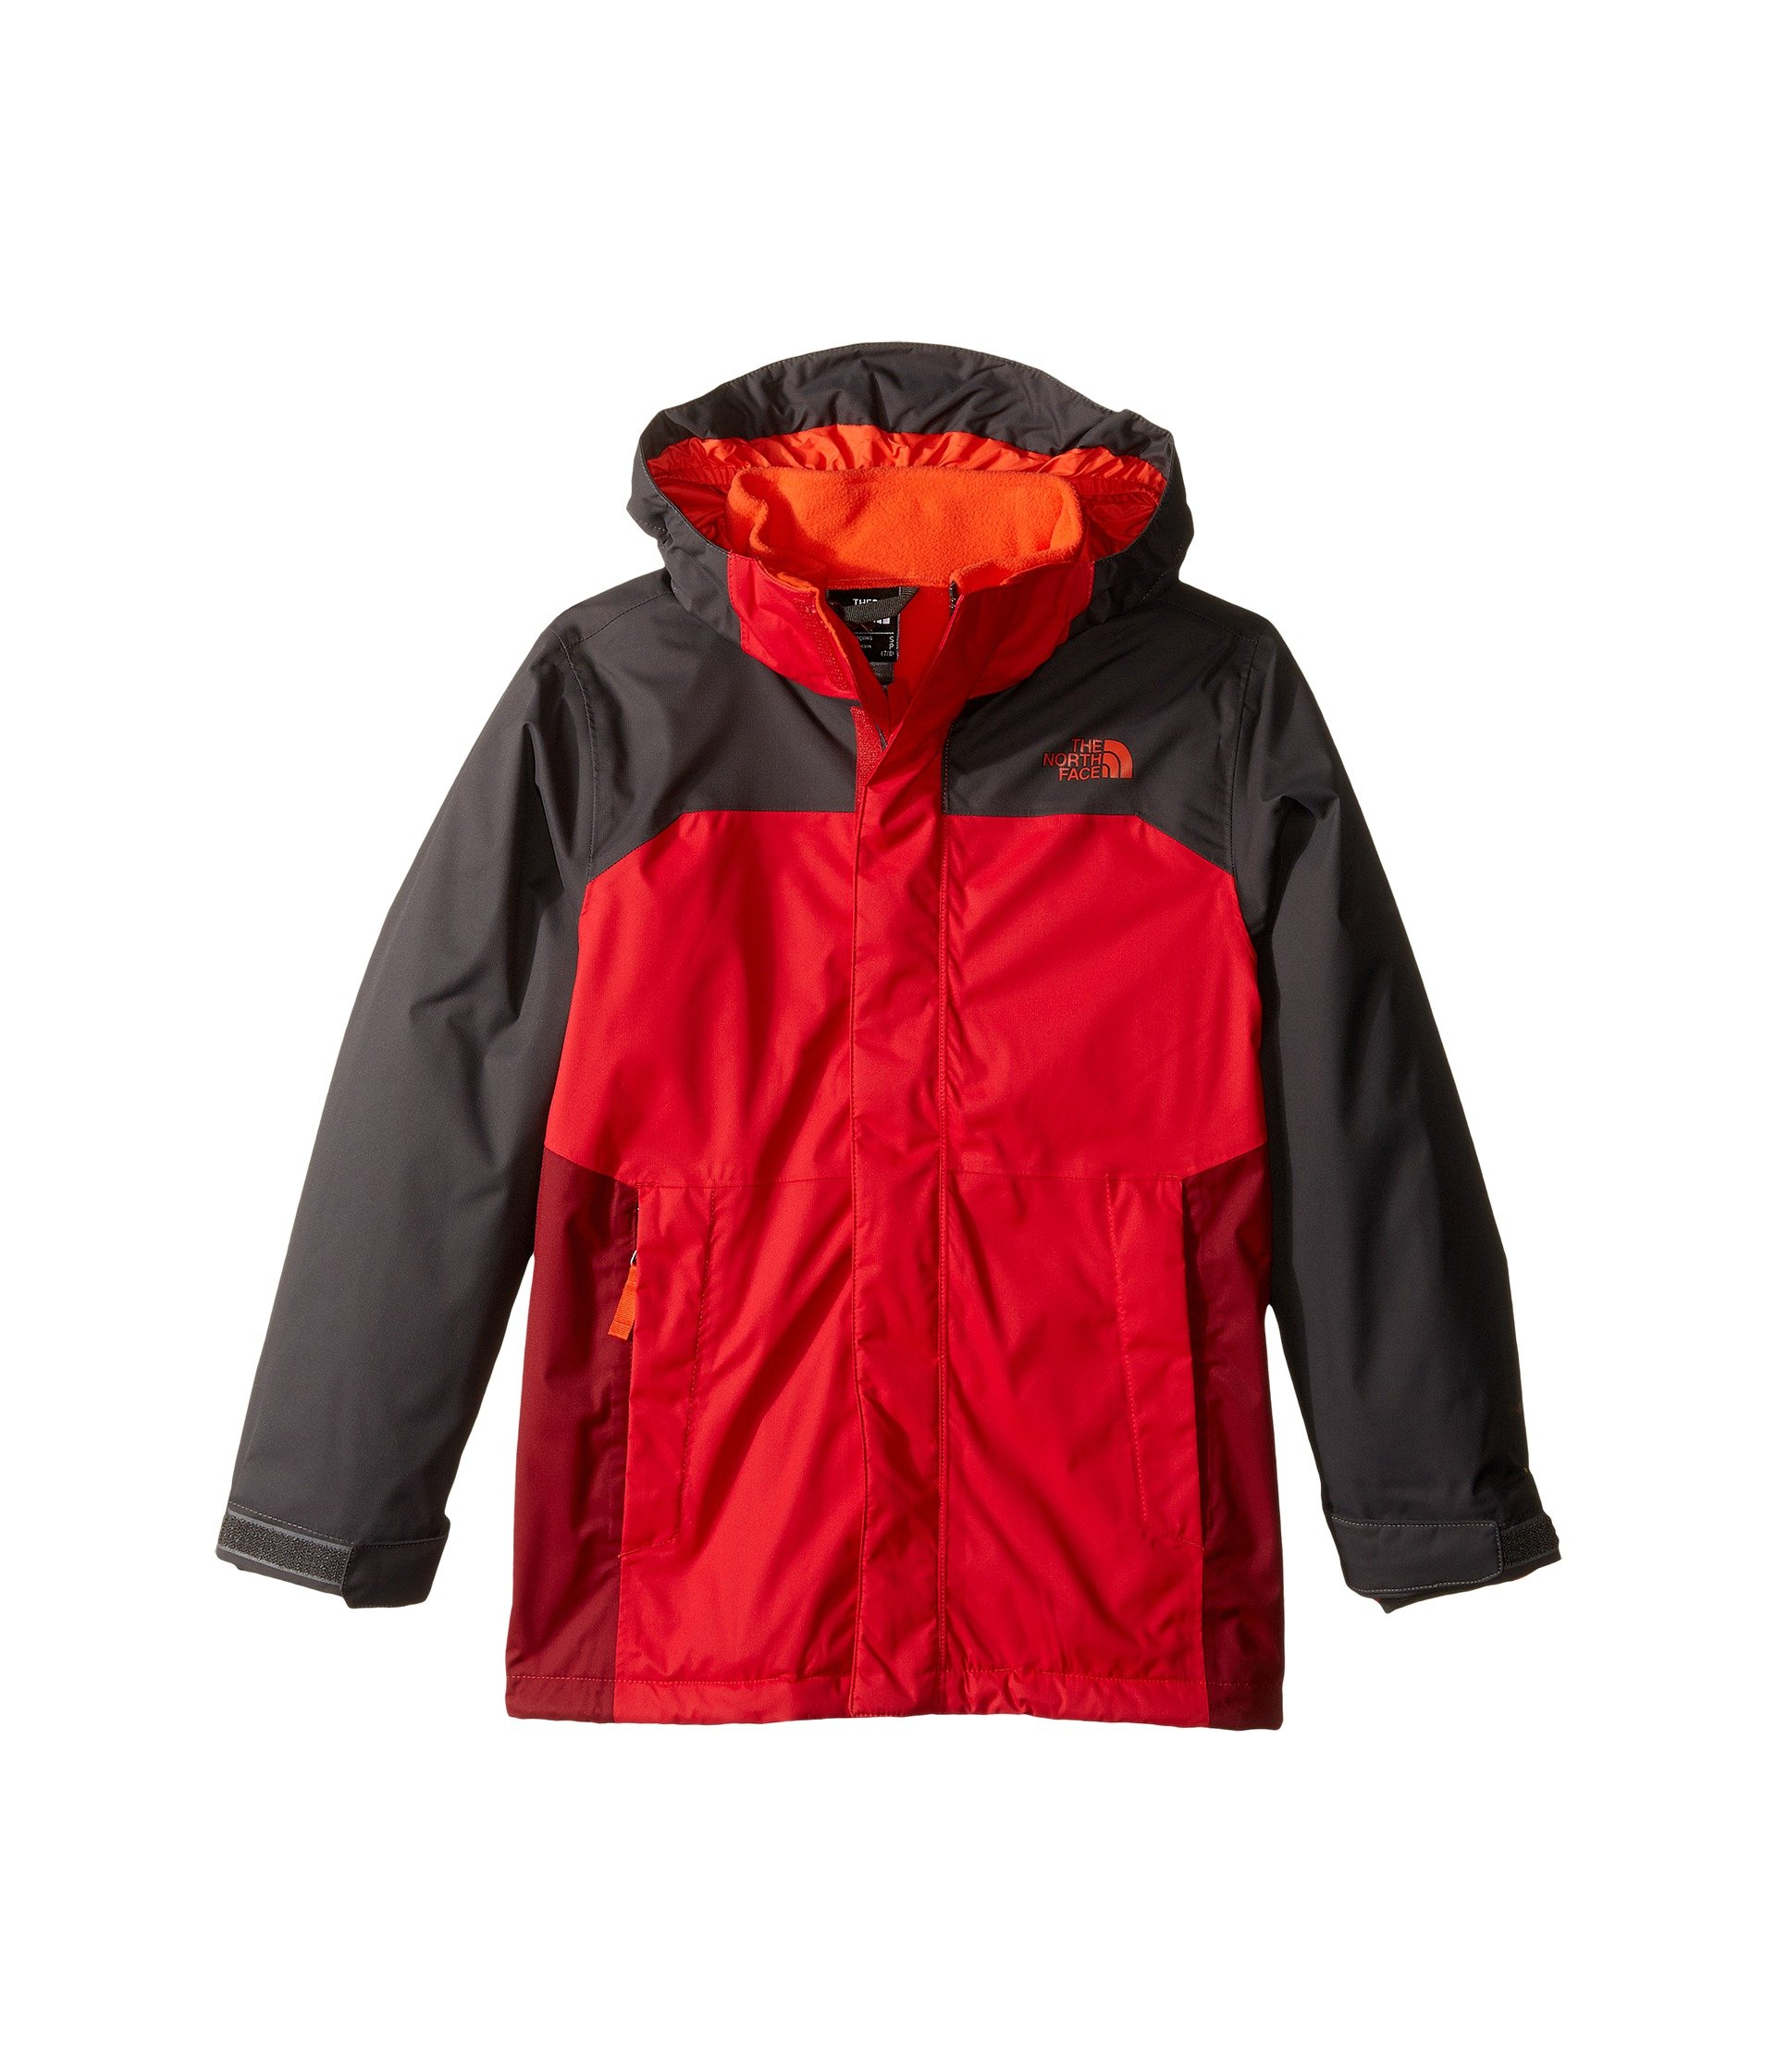 The North Face Big Boys' Vortex Triclimate Jacket (Sizes 8 - 20) - red, xl/18